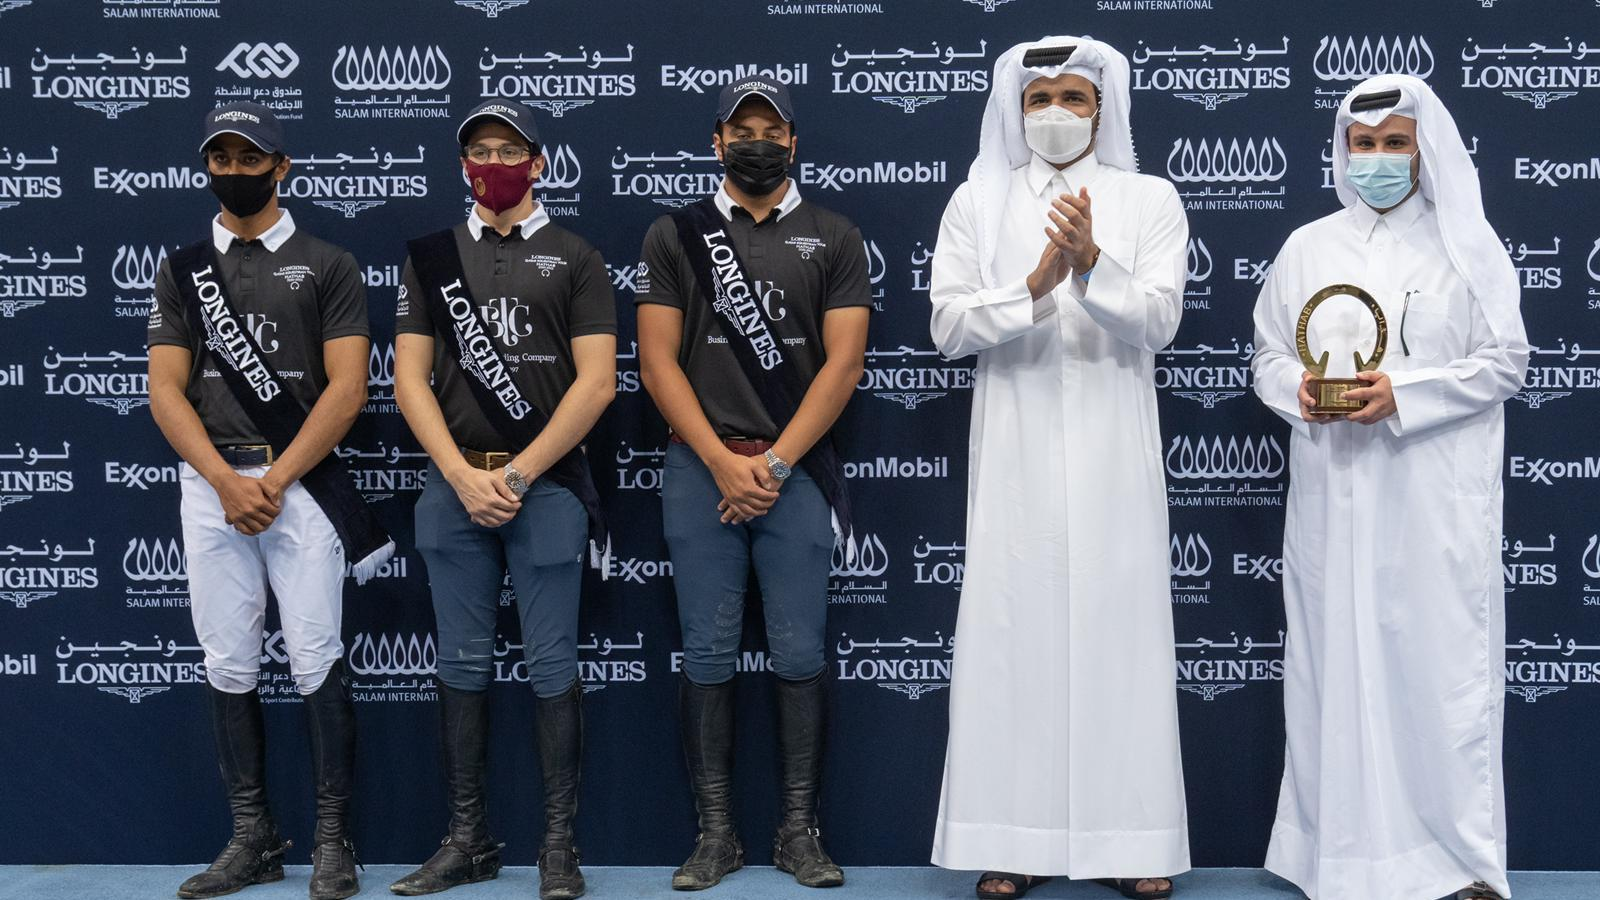 Al Ghazali, Cherif and Al Khaldi crowned season's overall champions of Longines Hathab